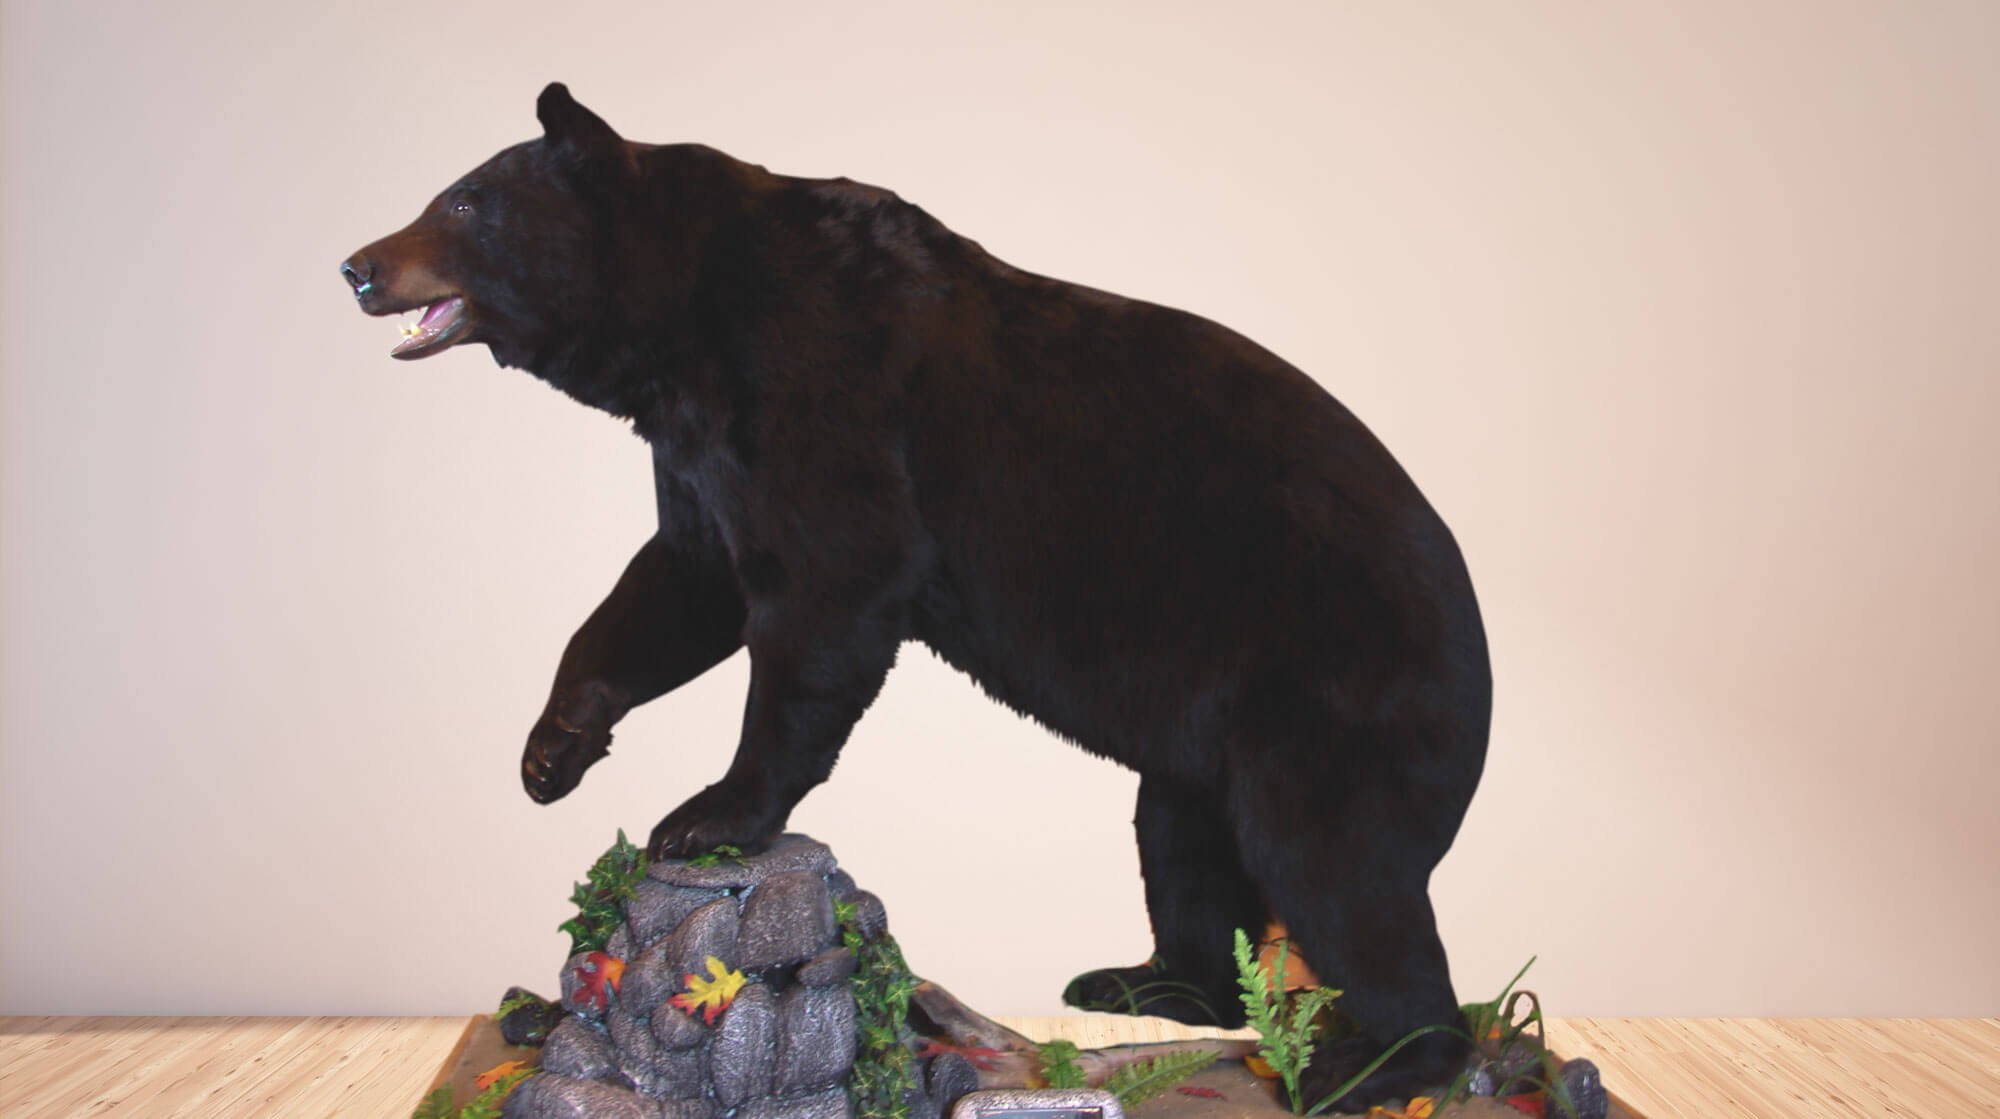 Life size mount of a black bear